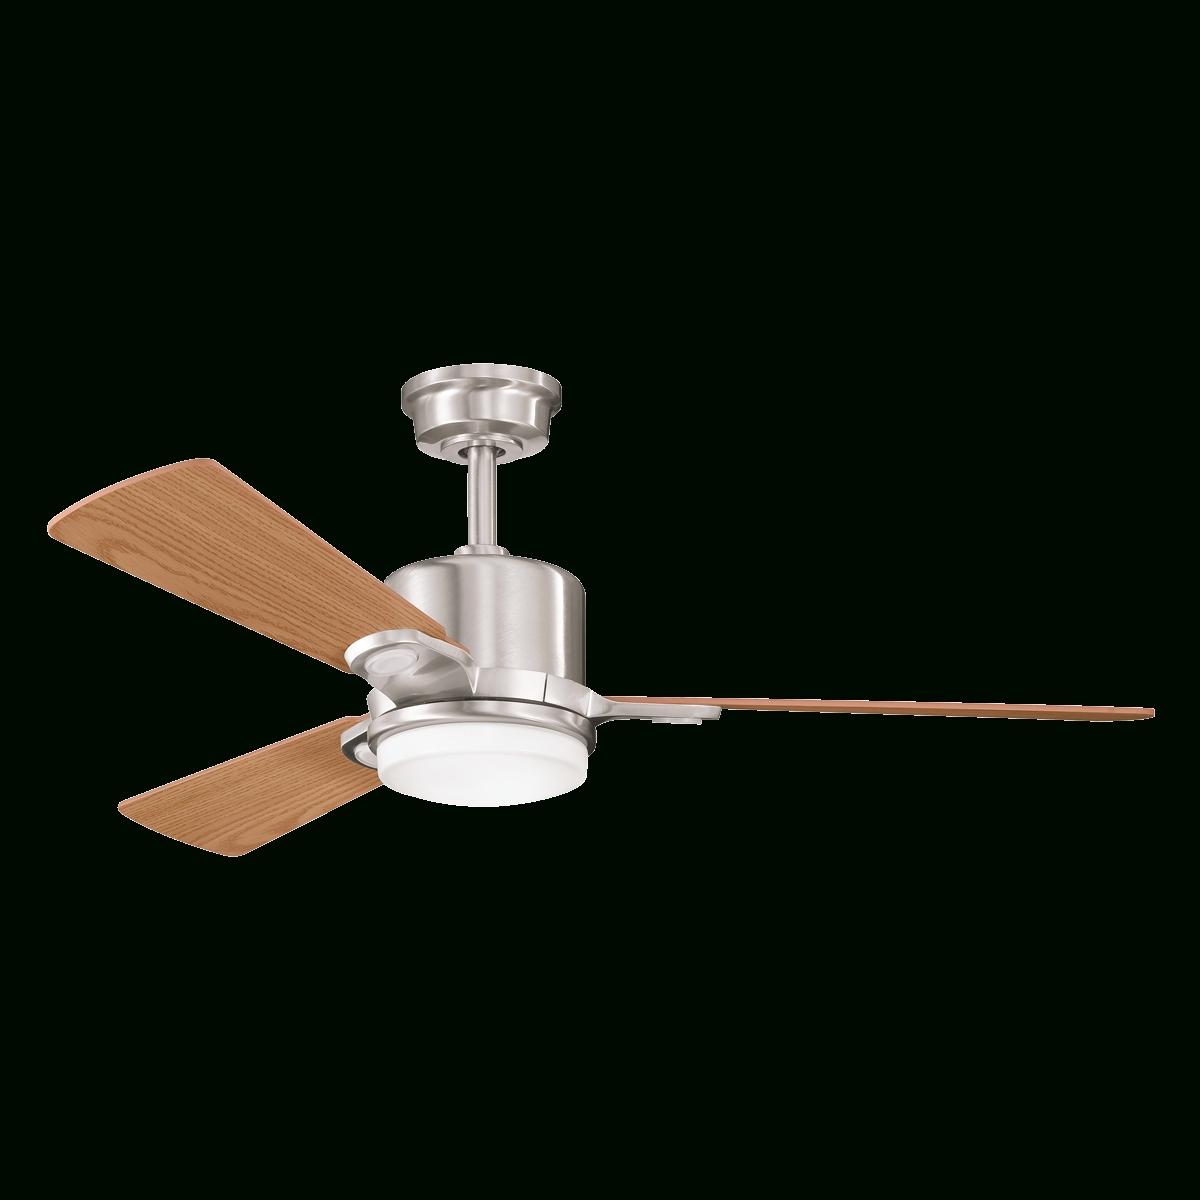 Latest 48 Inch Outdoor Ceiling Fans With Light Throughout 48 Inch Celino Contemporary Fan Bss (View 12 of 20)